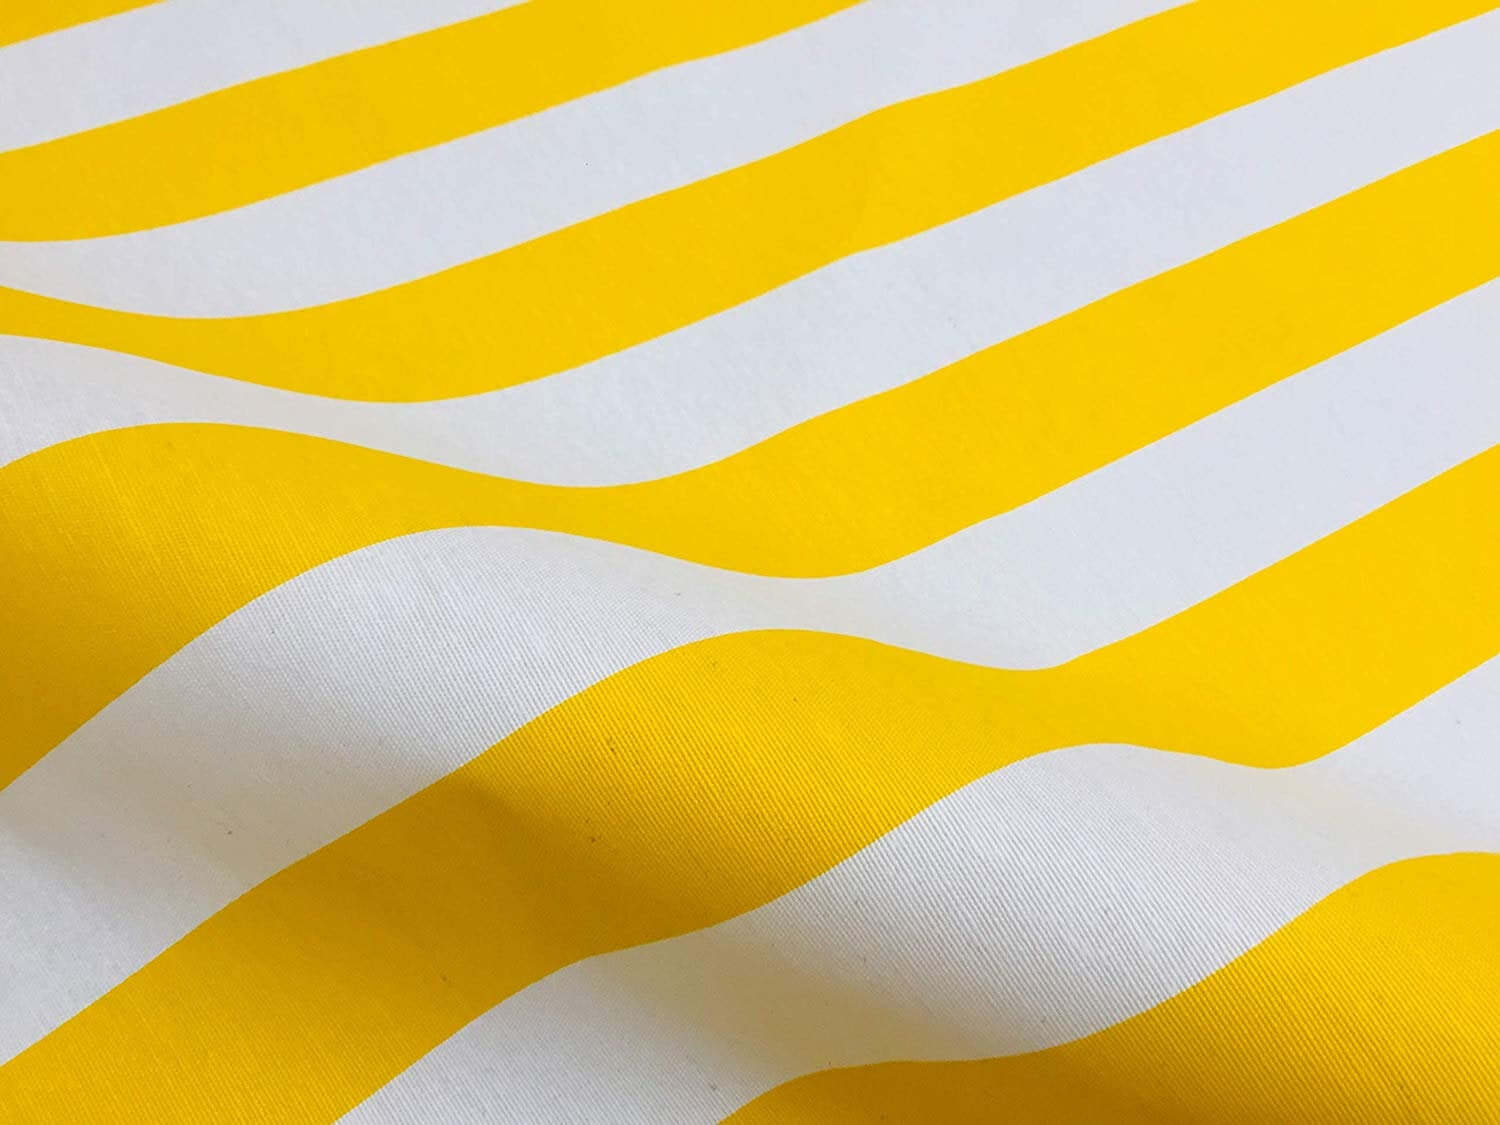 teflon-waterproof-outdoor-fabric-for-cushion-gazebo-beach-140cm-wide-sold-by-metre-yellow-white-stripe-material-stripes-5d39a6021.jpg